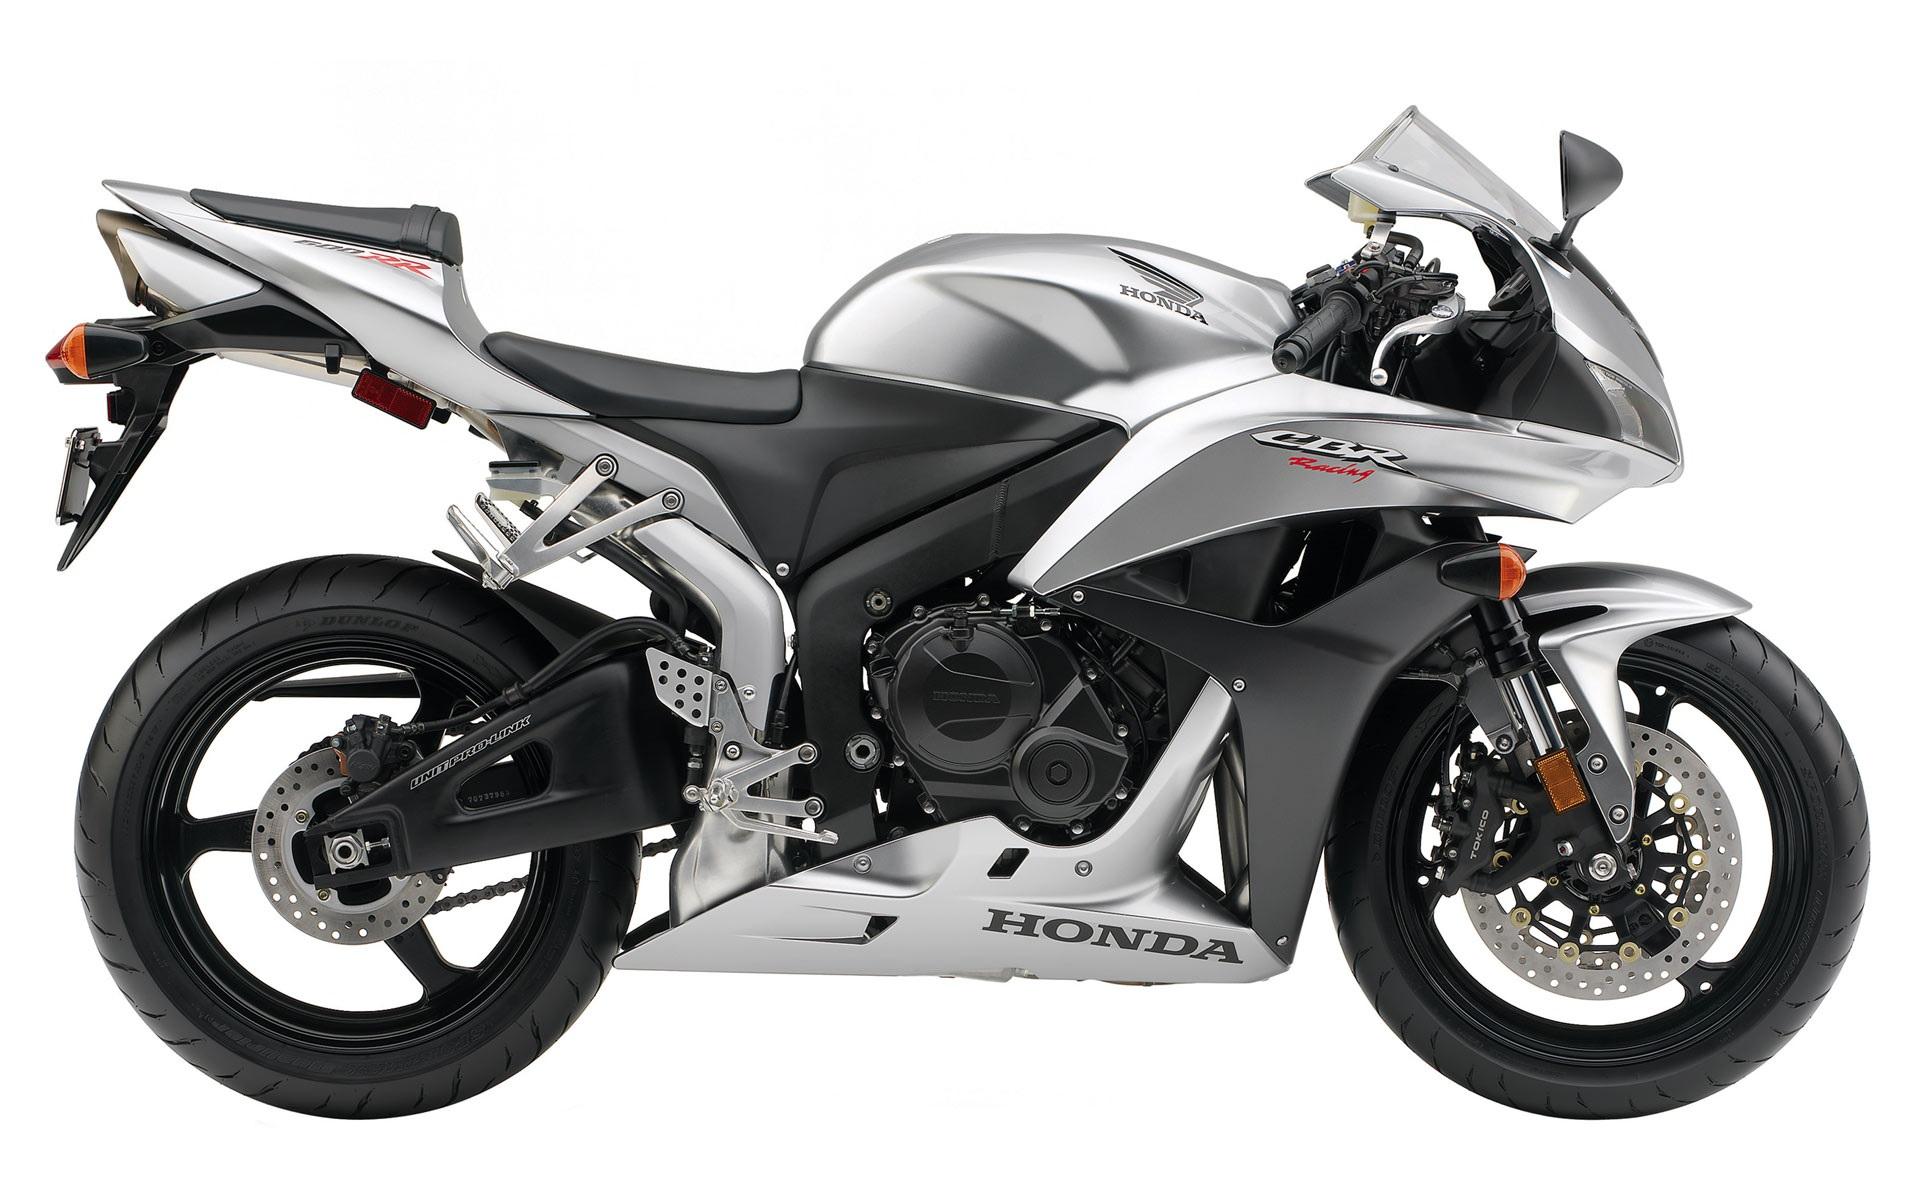 honda cbr600rr wallpapers pictures hd wallpapers. Black Bedroom Furniture Sets. Home Design Ideas